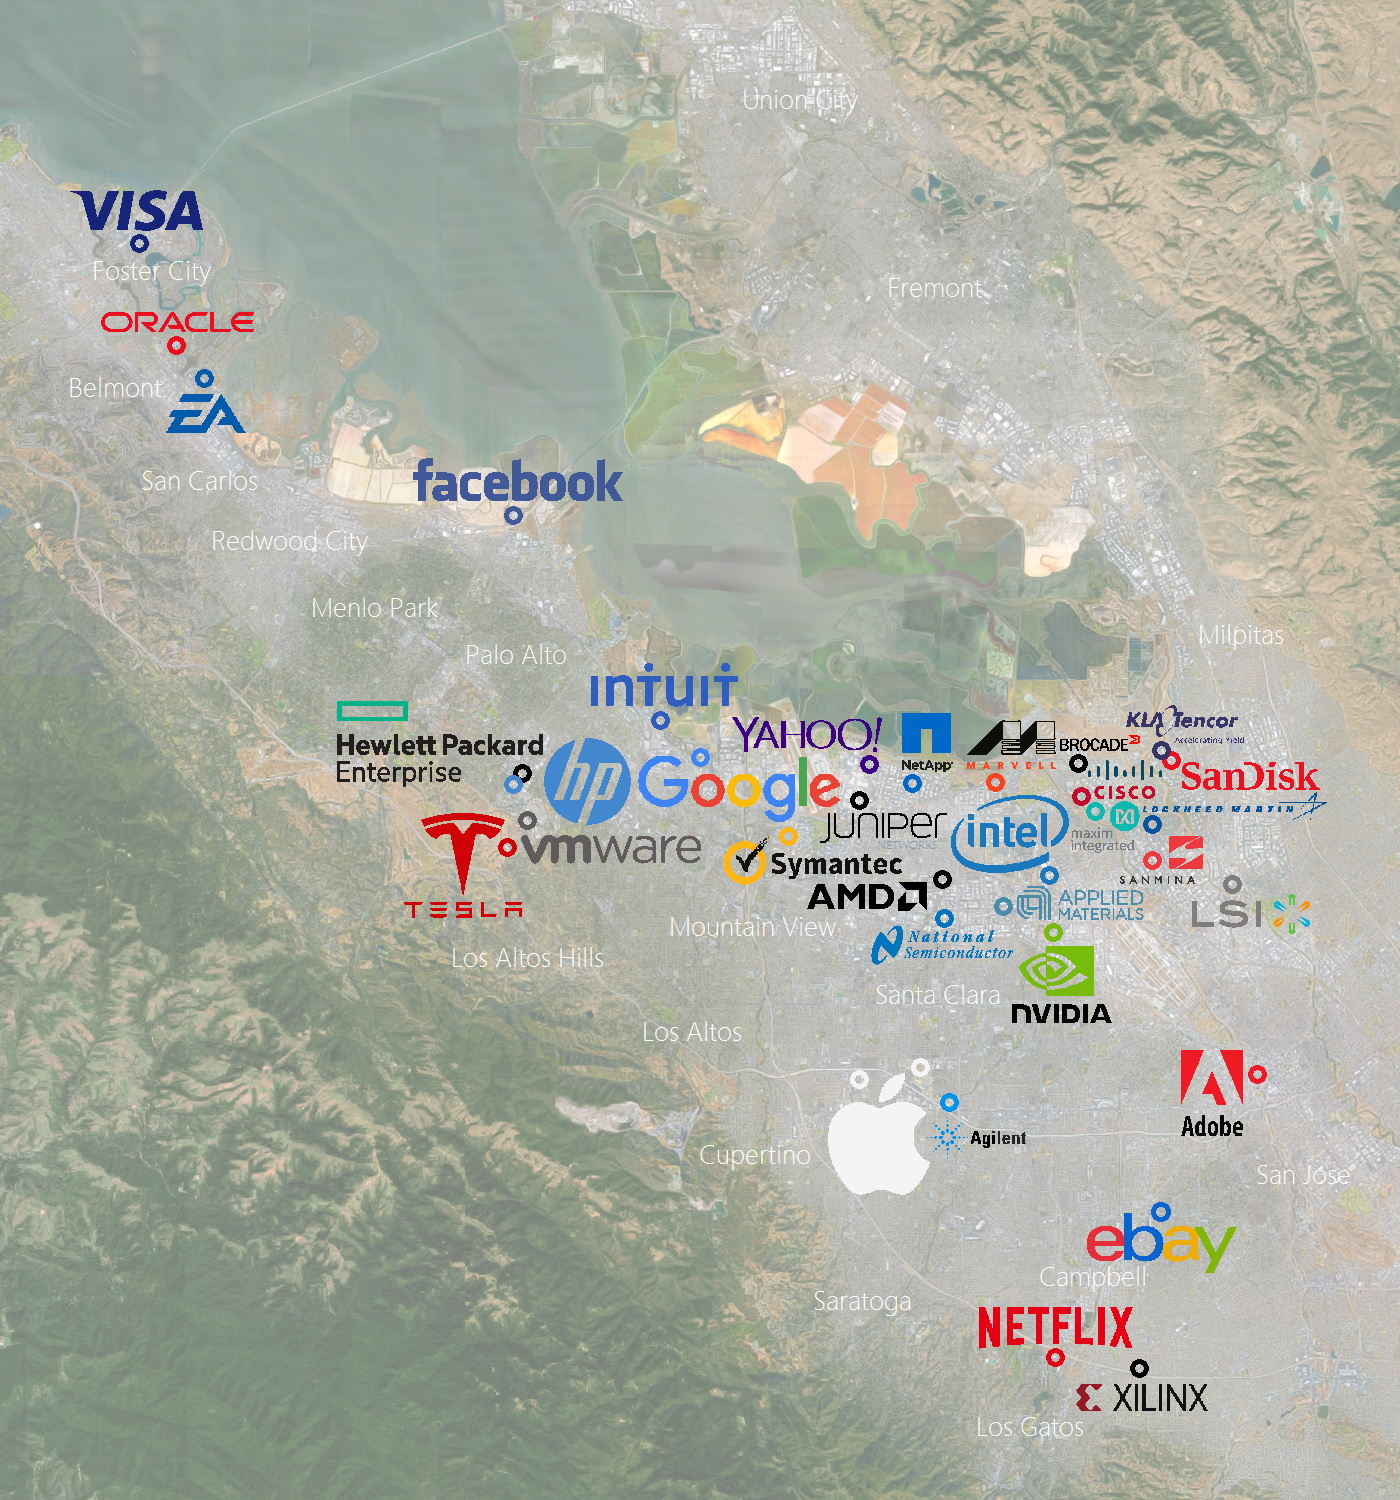 Silicon Valley's Largest High Tech Companies